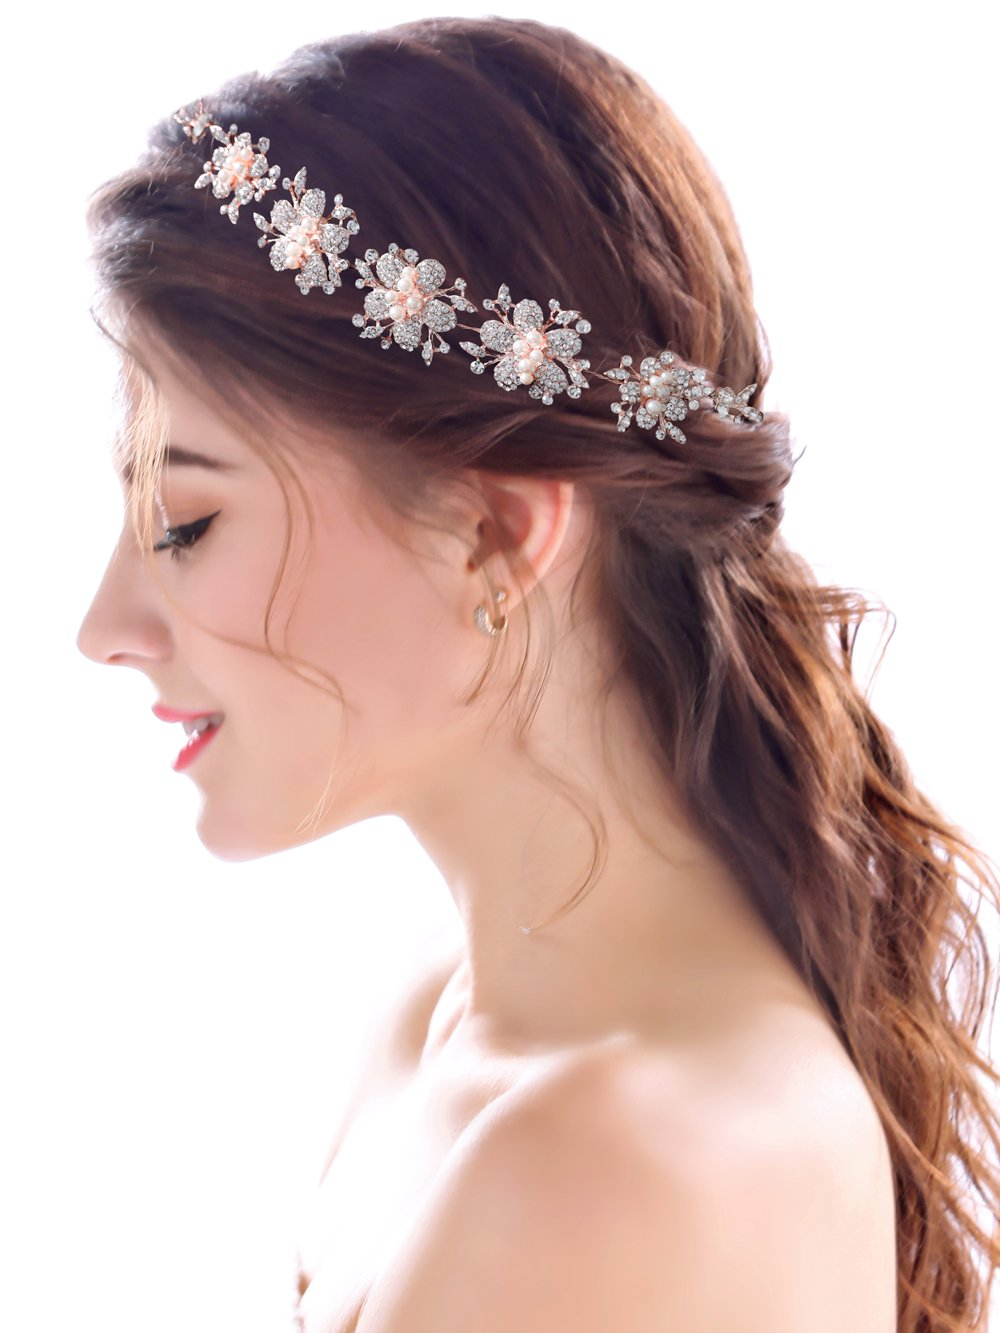 Amazon.com   Yean Wedding Headband Rose Gold Flower Rhinestones Bridal Hair  Band Hair Accessories for Brides and Bridesmaids with Ribbon   Beauty 62c7577f0f5